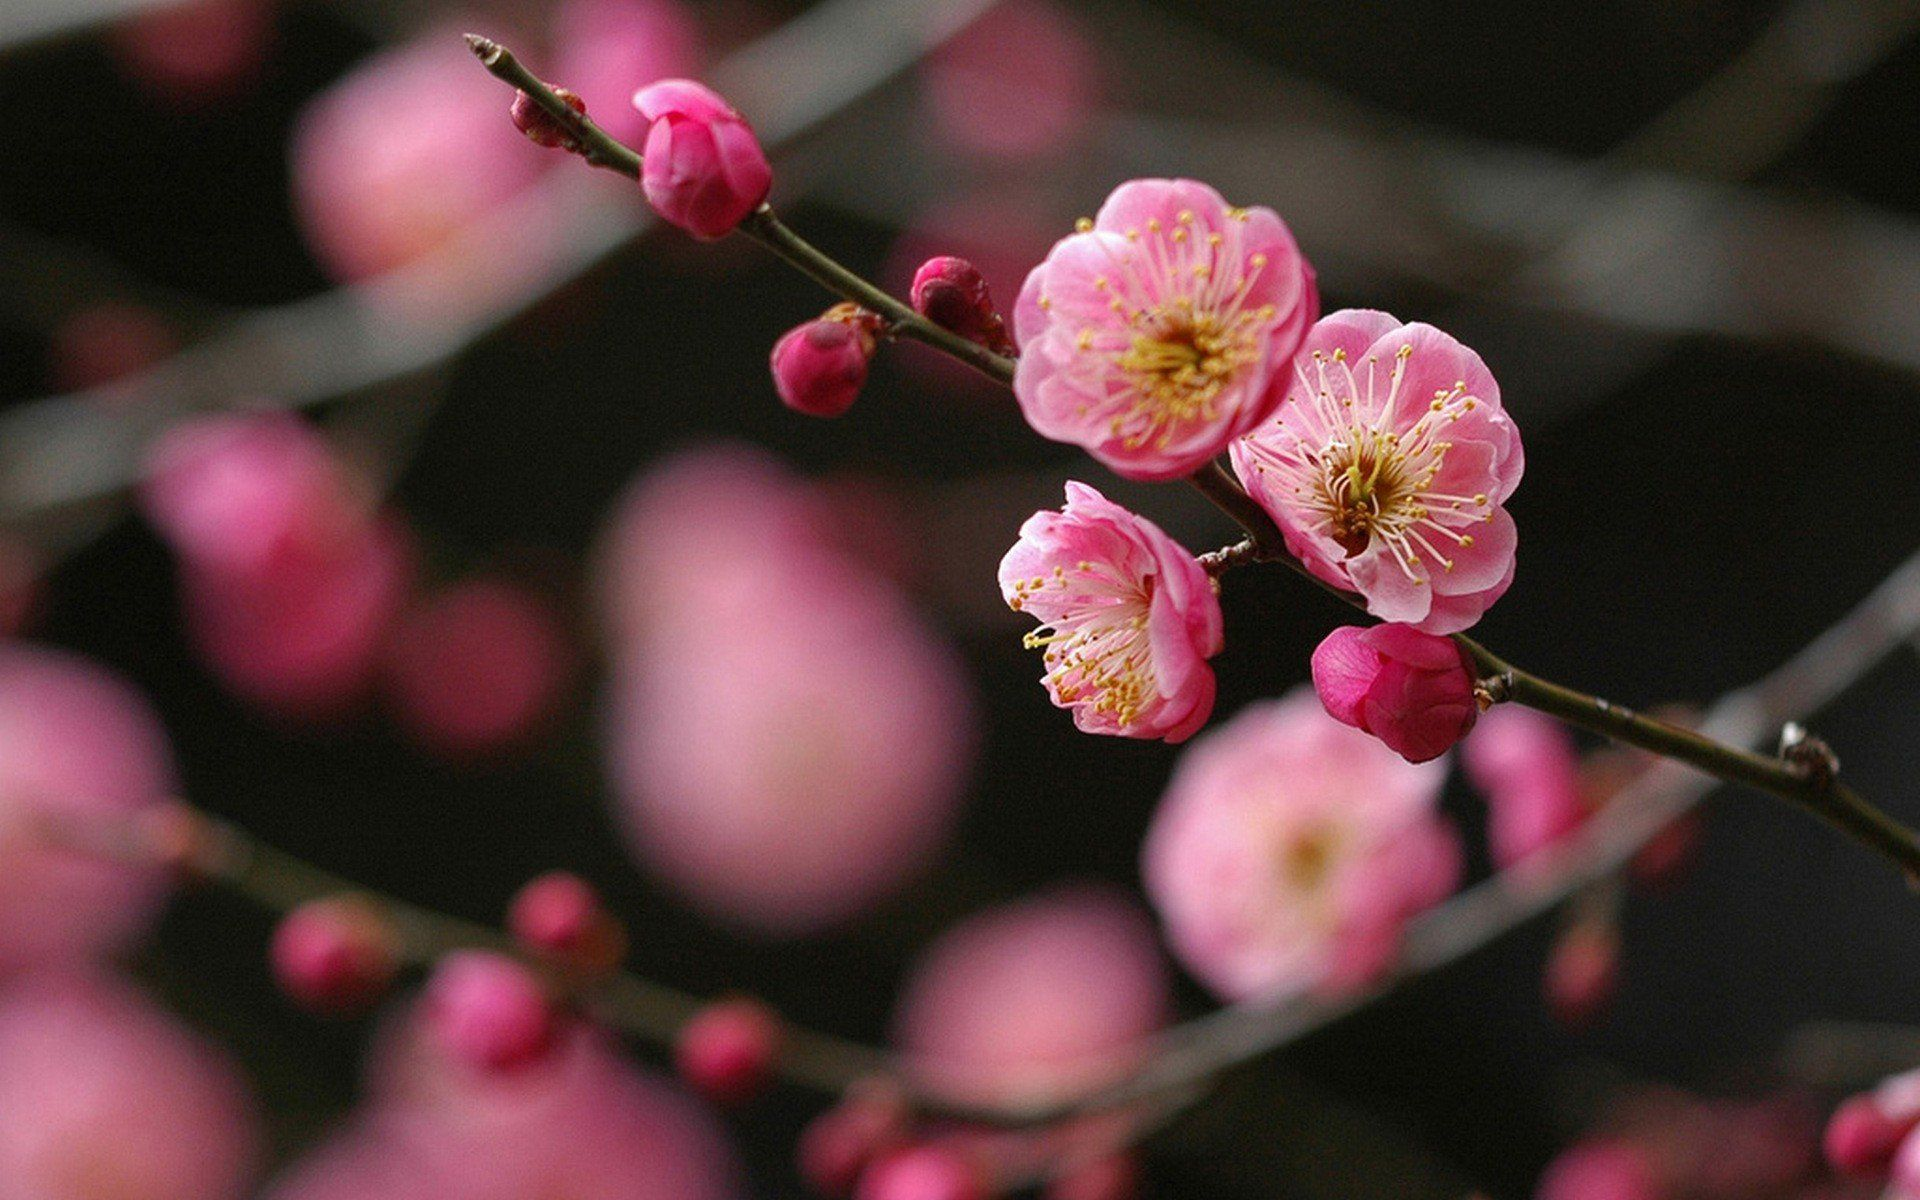 Japanese Cherry Blossom Flower Wallpapers Android For Desktop Wallpaper Background On Flowers Category Similar With Branch Cherry Blossom Cherry Blossom Flower